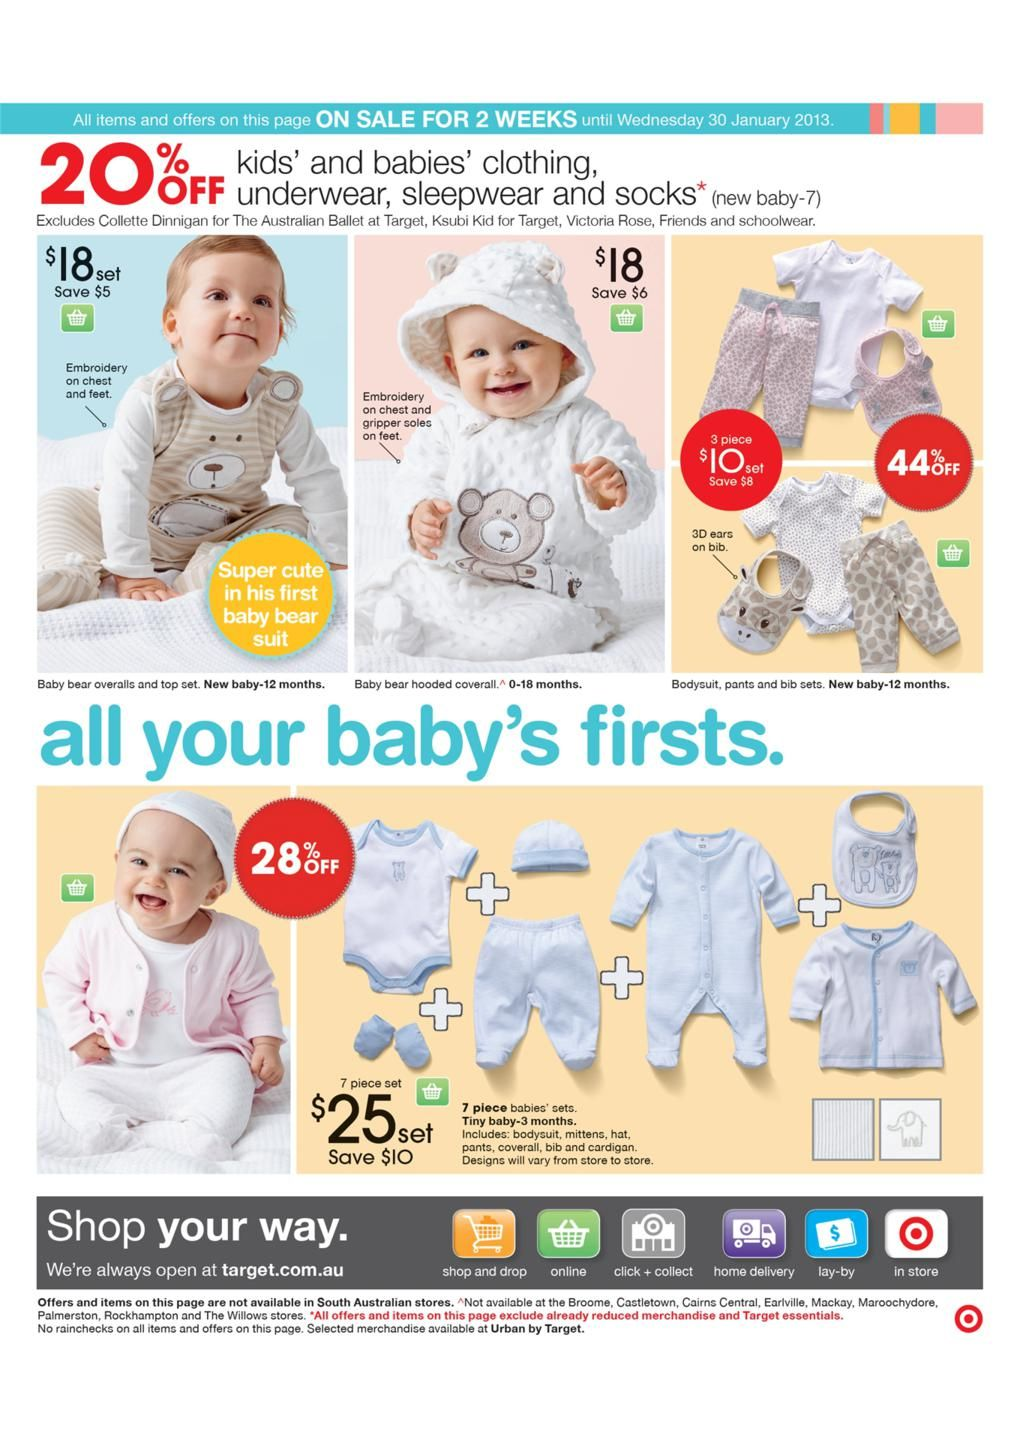 Target Catalogue - Baby First Sale, Kids And Babies Clothing ...